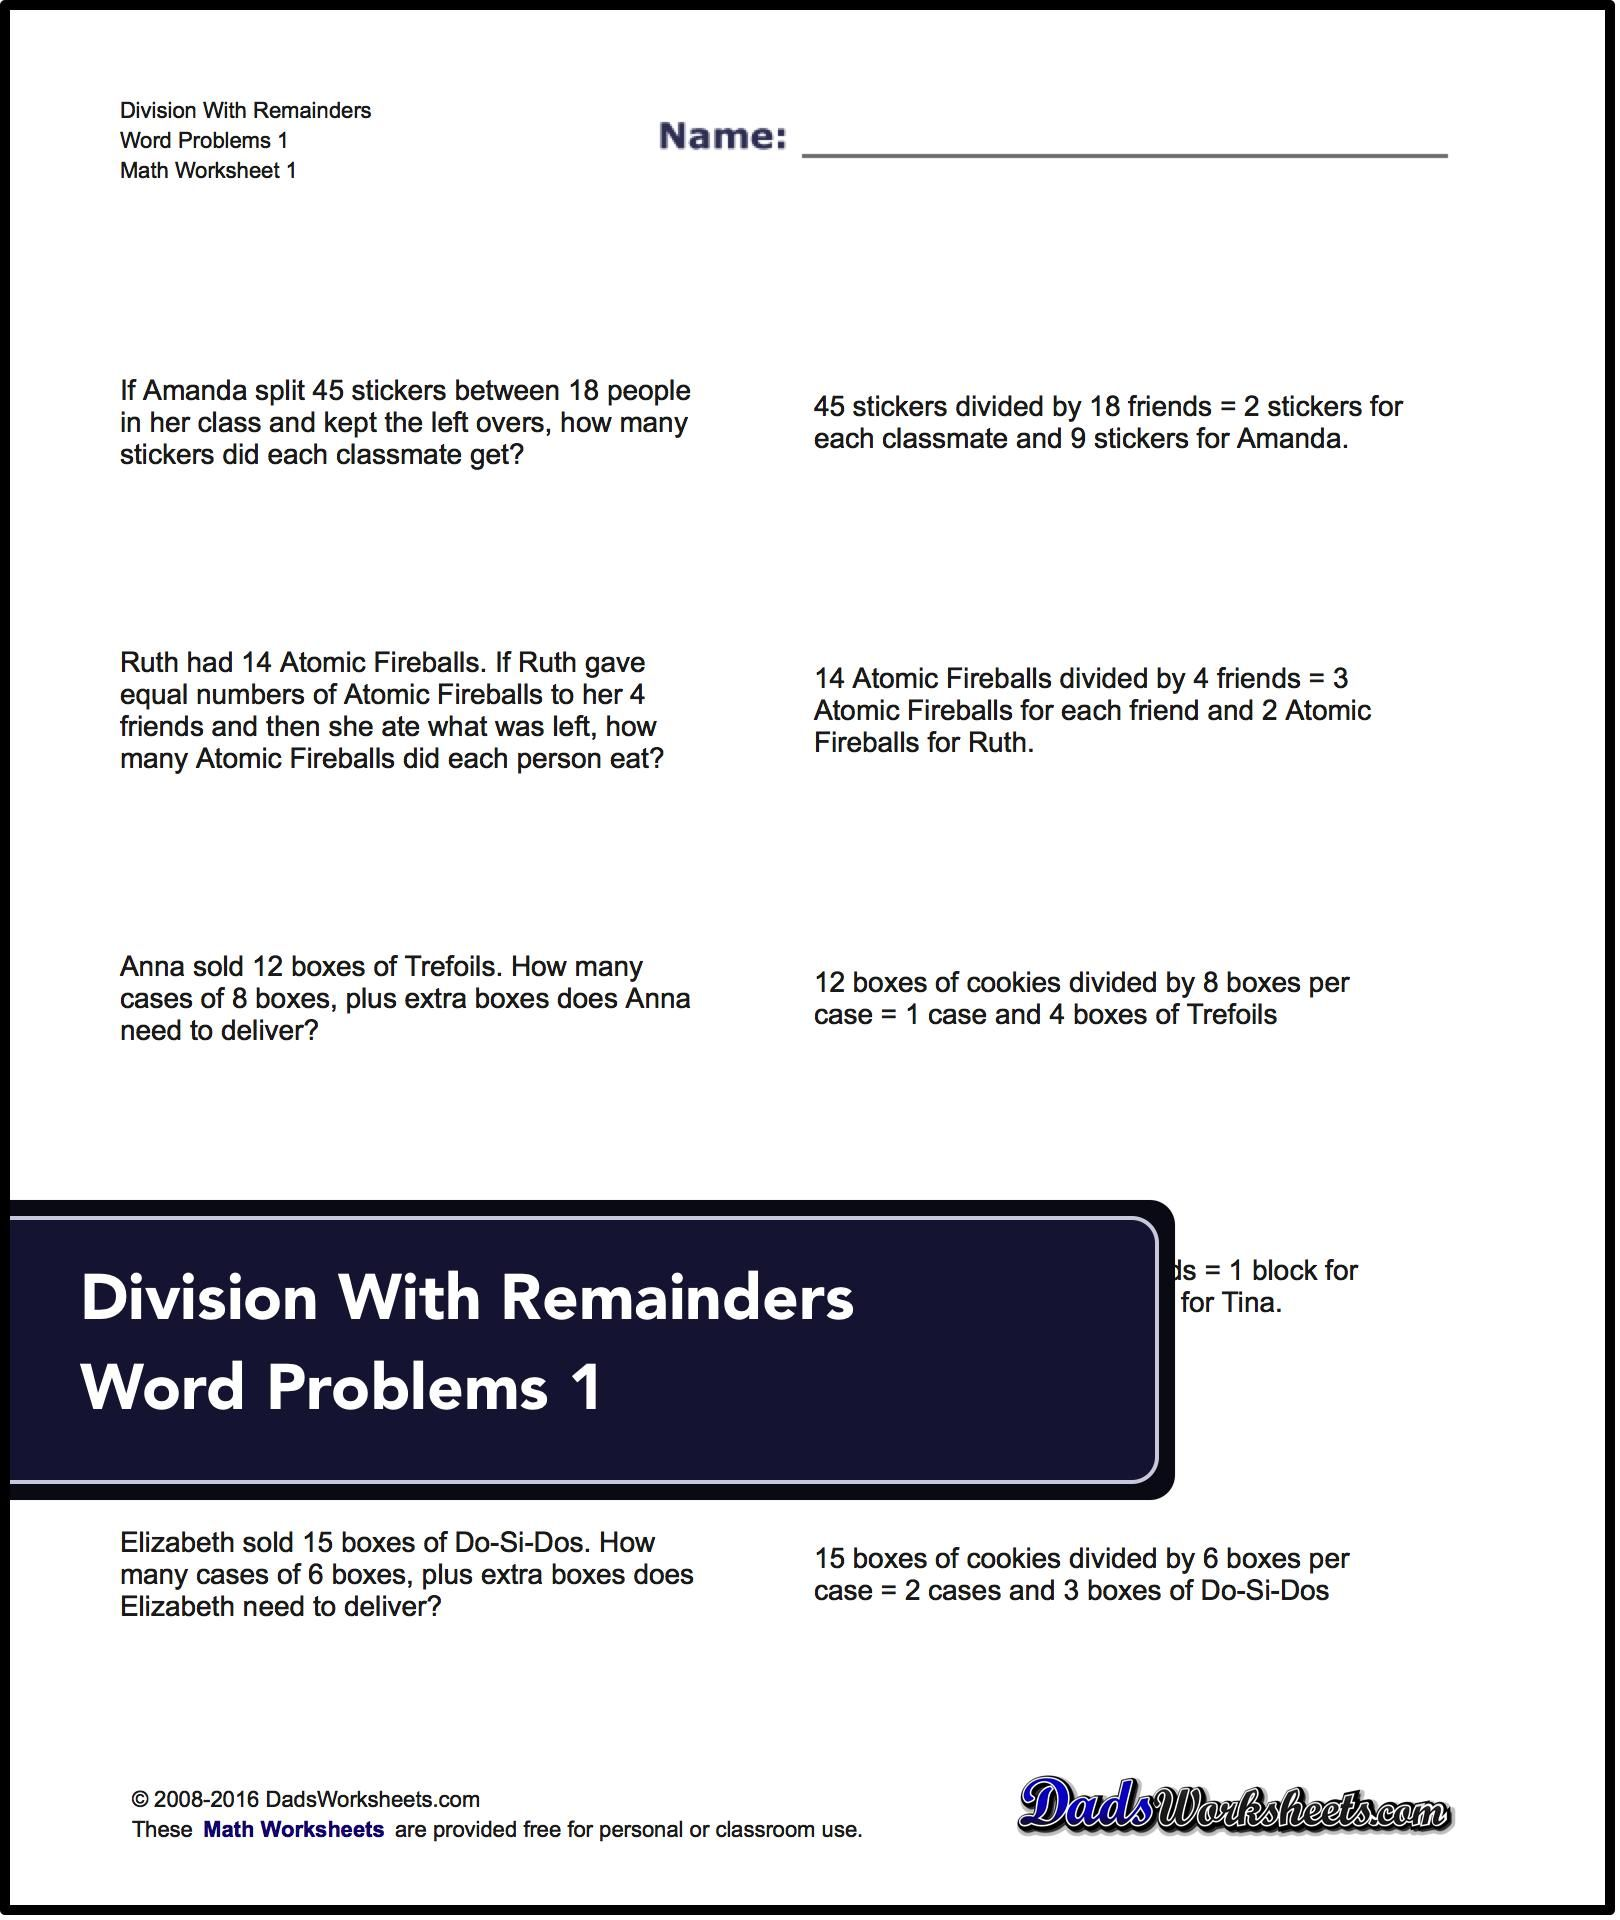 Free Math Worksheets For Division For With Remainders Word